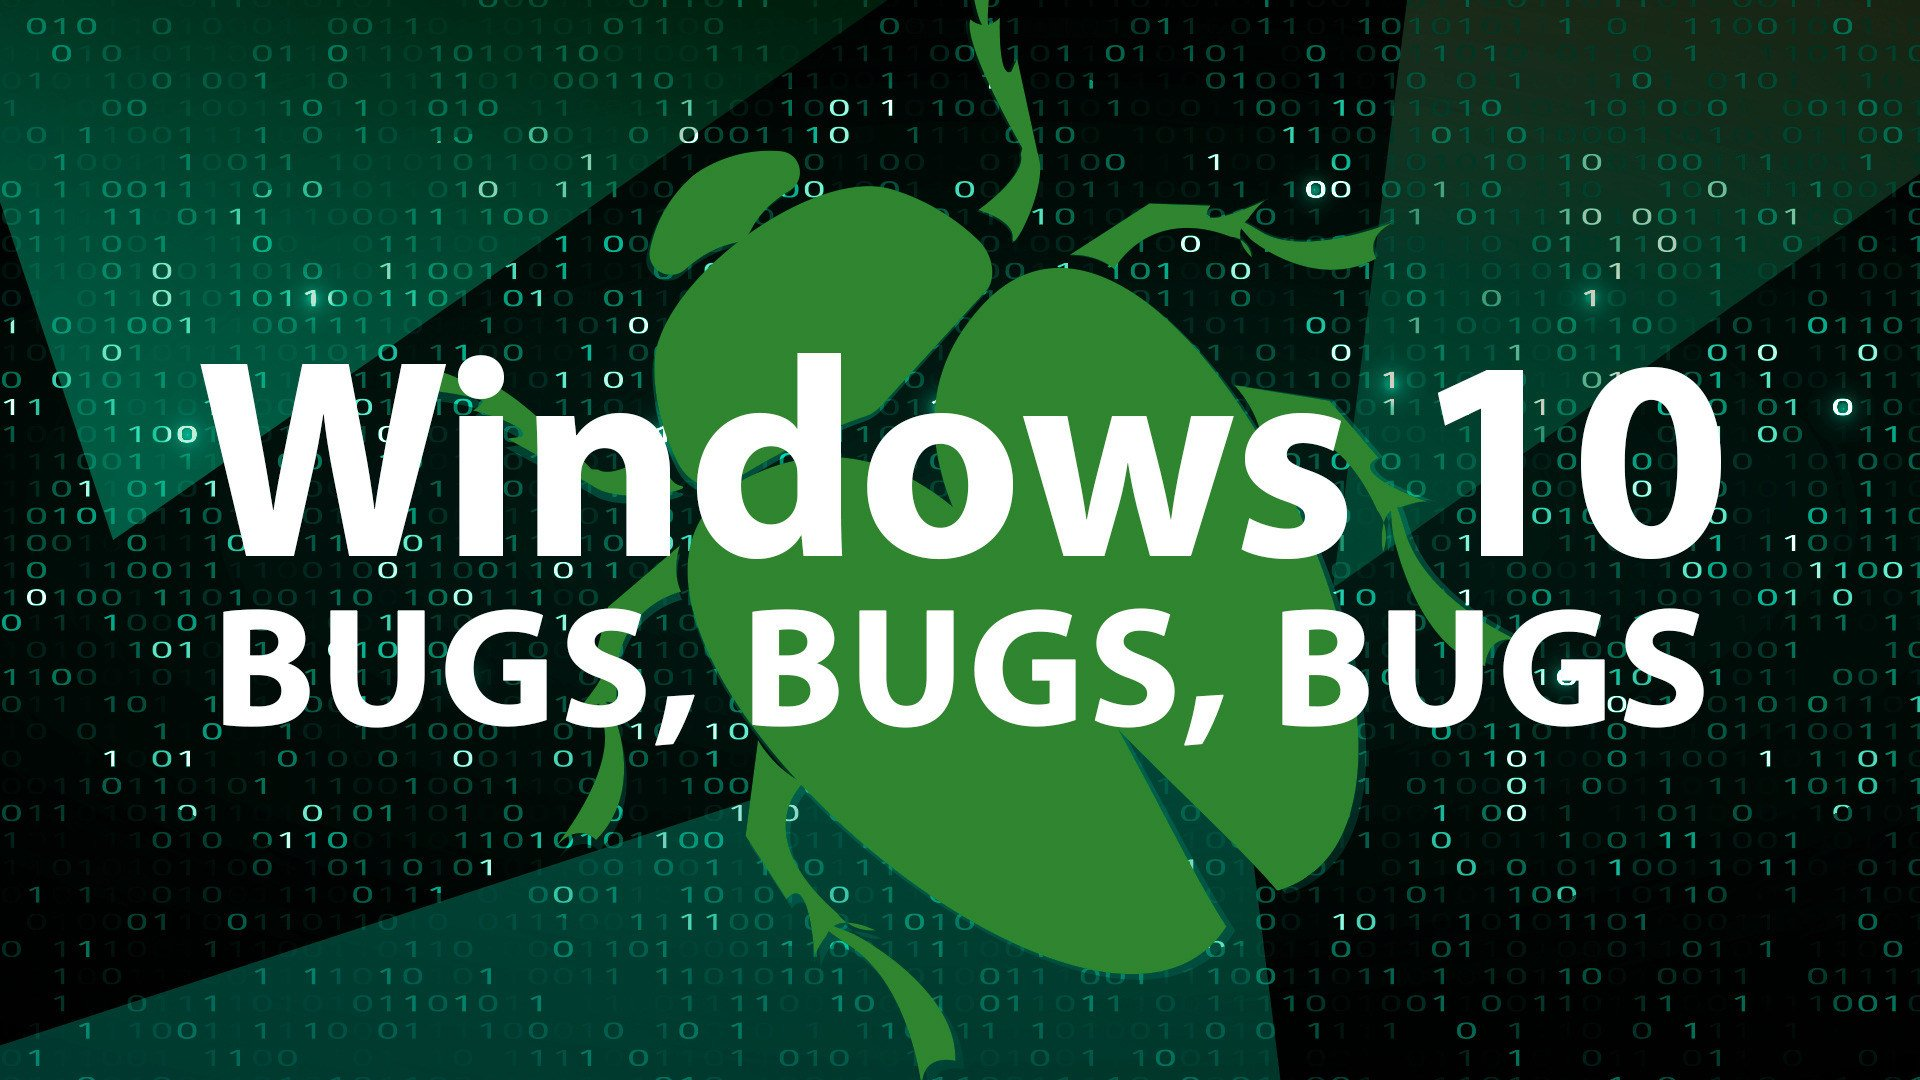 Microsoft, Betriebssystem, Windows 10, Update, Fehler, Bug, Windows Update, Fehlerbehebung, Bugs bugs bugs, Windows 10 Update, Windows 10 bugs, Windows 10 Bug, Windows 10 Fehler, Update Fehler, Windows 10 Bugfix, Update-Probleme, Windows 10 Update Fehler, Windows Update Fehler, Windows Fehlermeldung